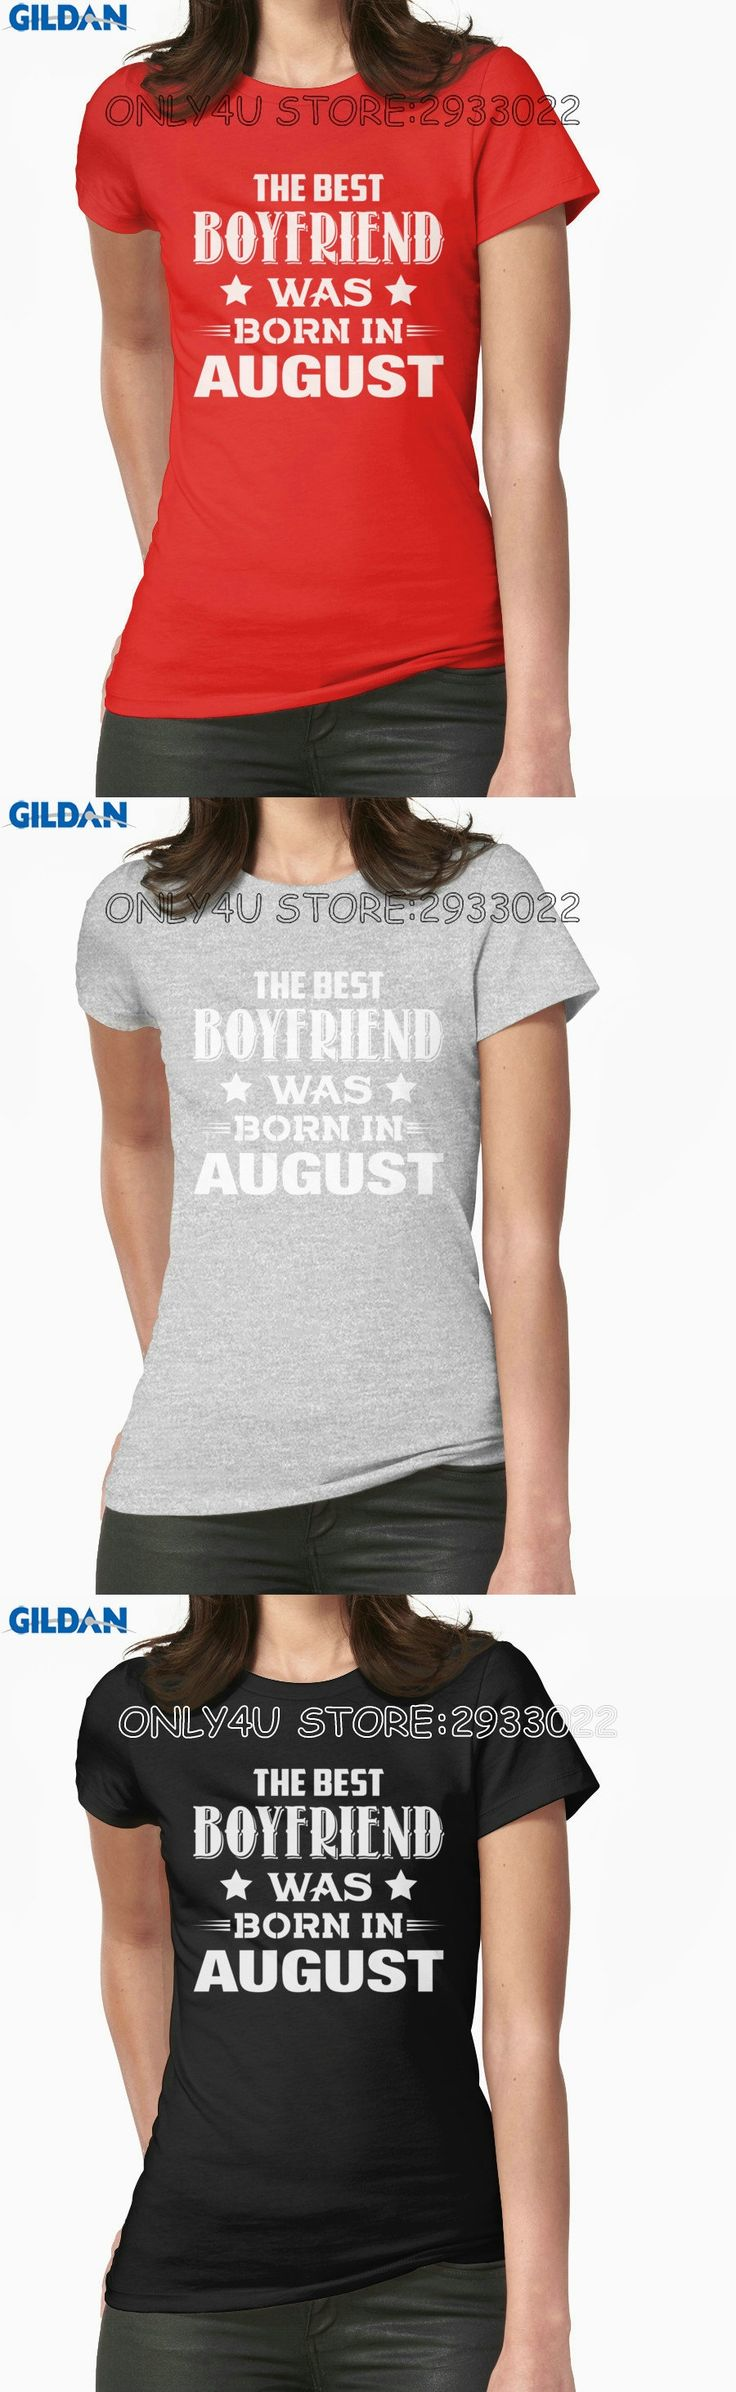 Gildan Only4U T Shirt Quotes Print The Best Boyfriend Was Born In August O-Neck Short-Sleeve Tee For Women